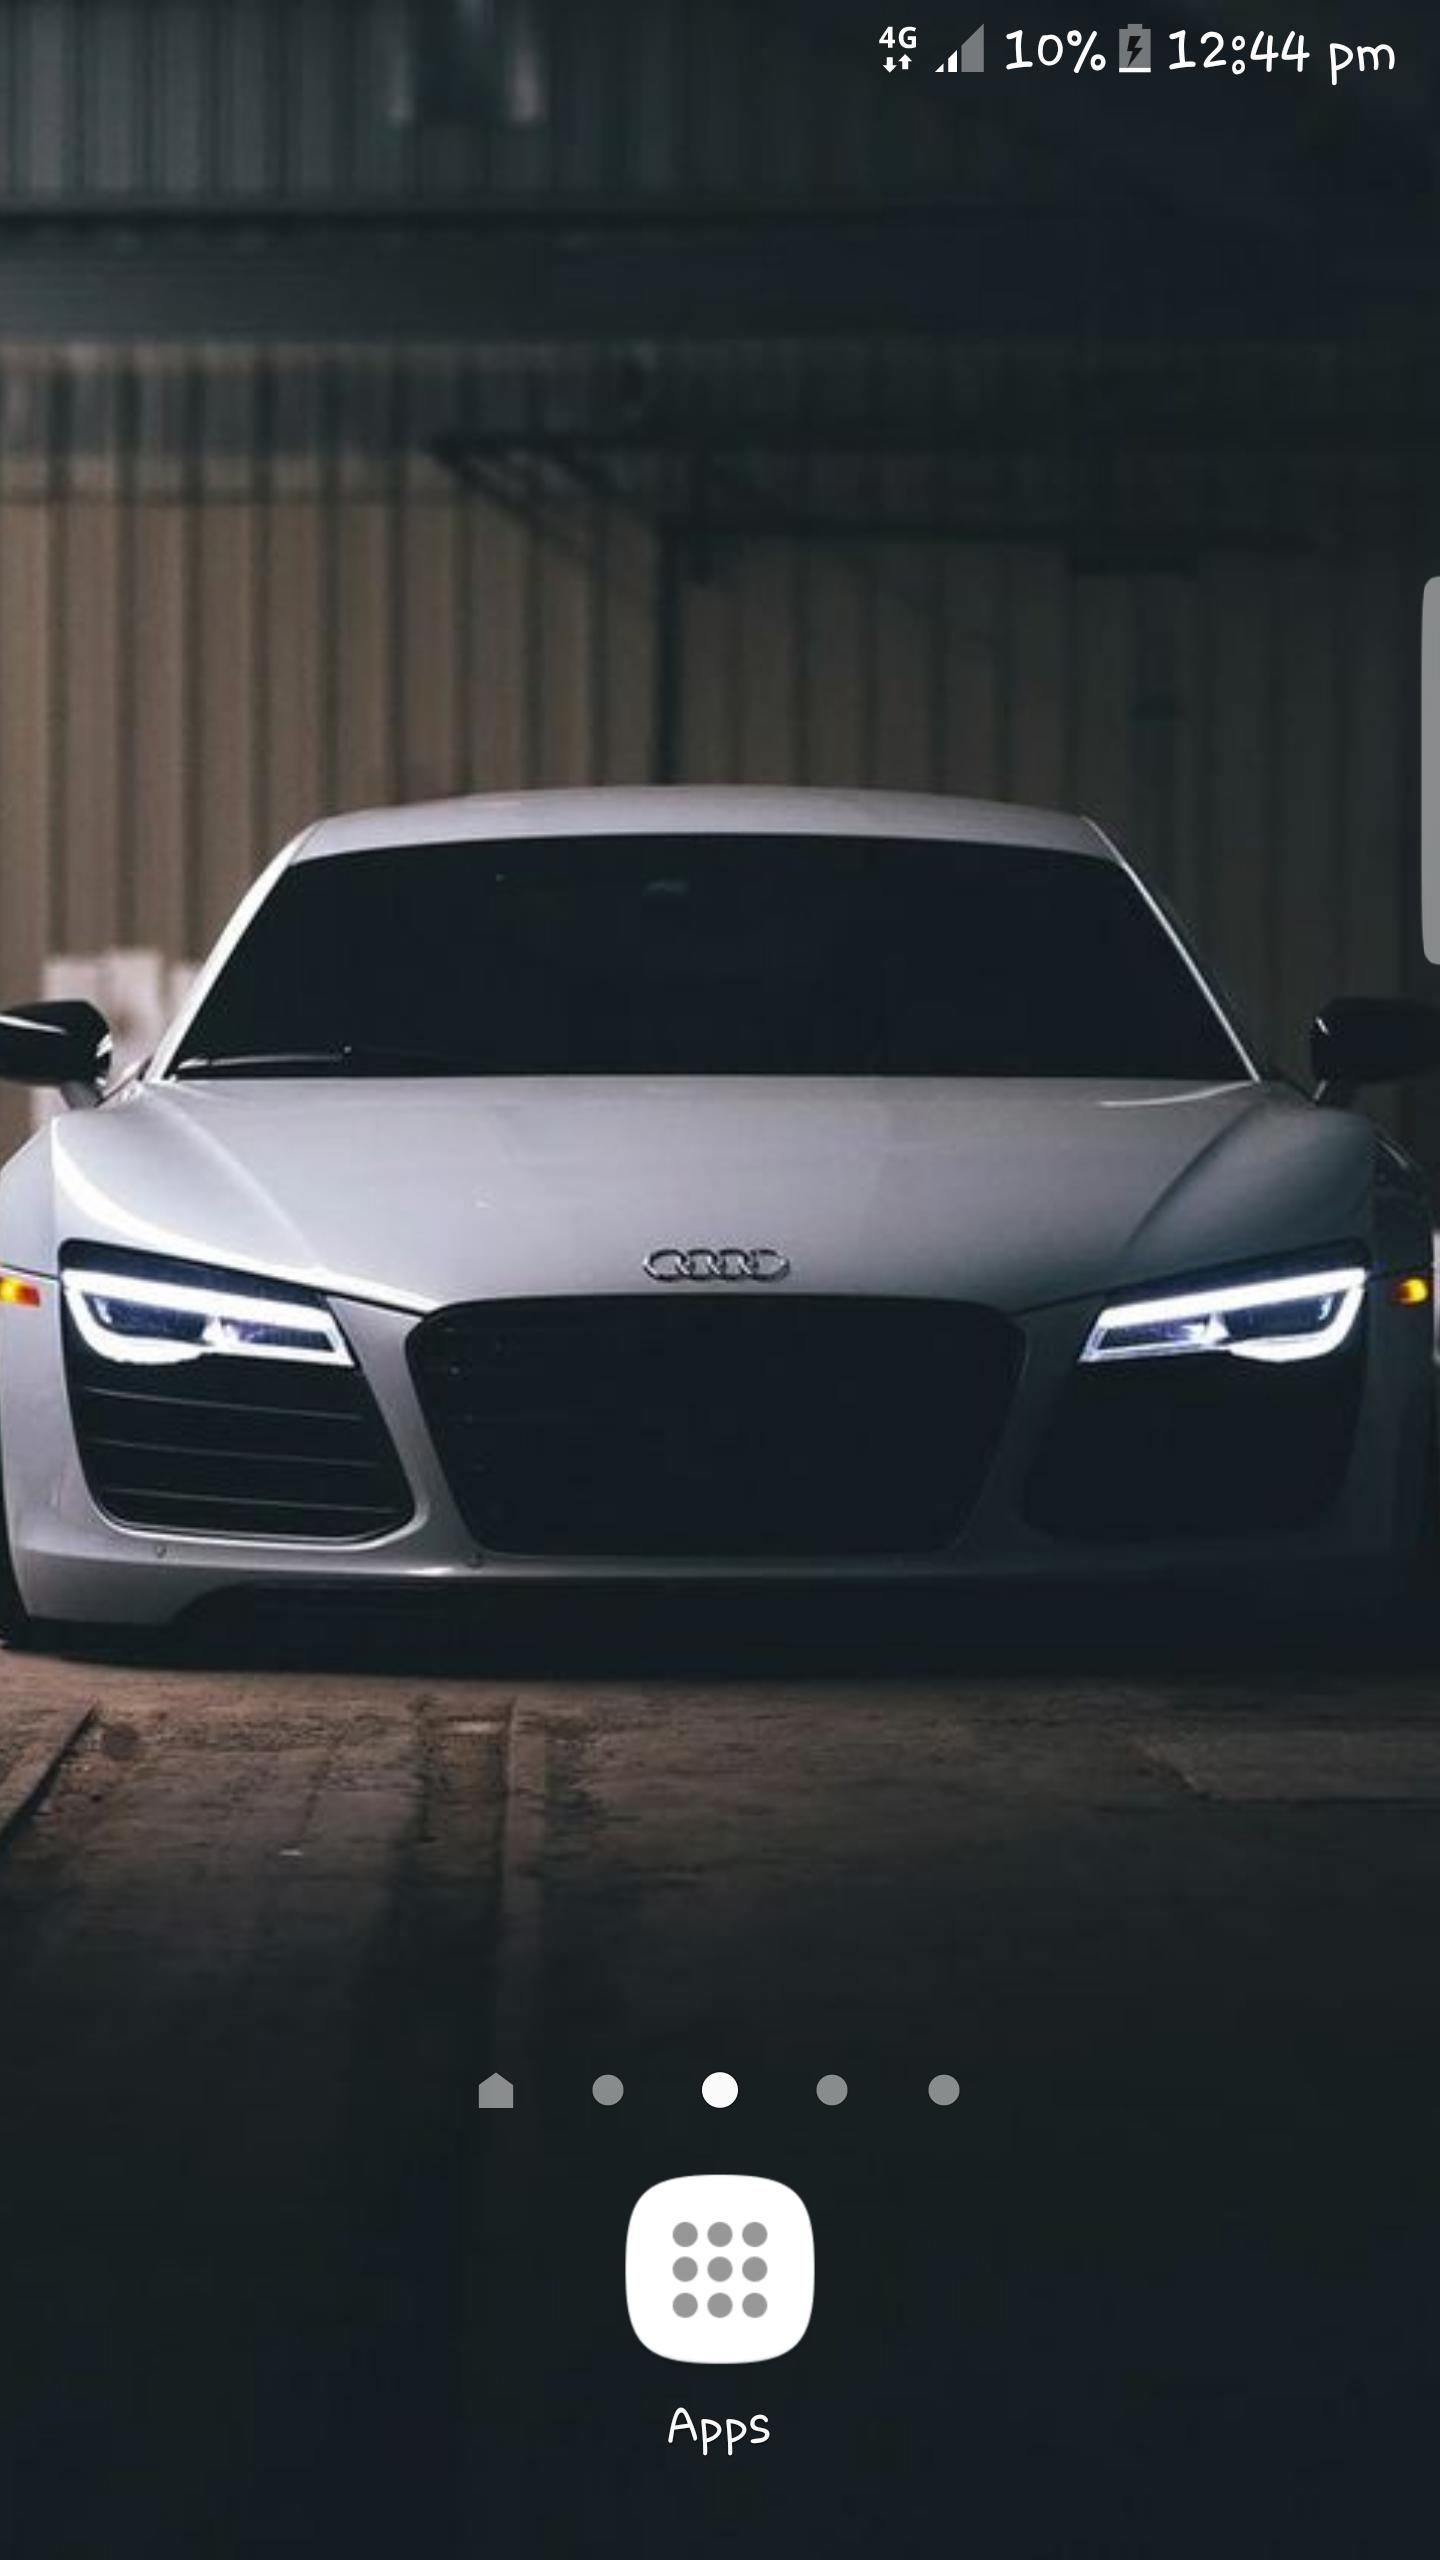 Hd Car Wallpapers For Android Posted By Samantha Tremblay